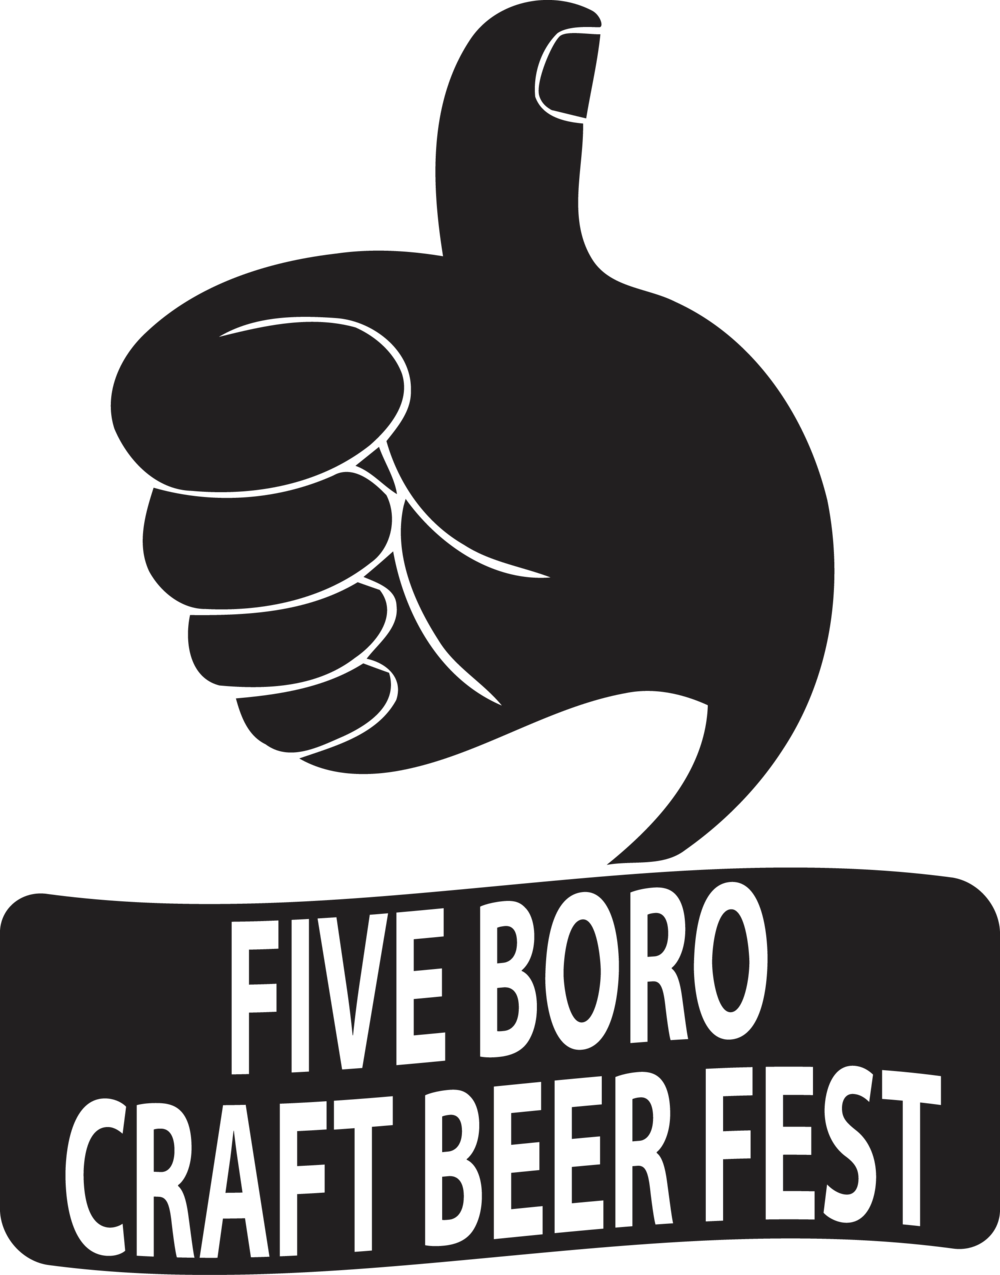 Five Boro Craft Beer Fest Thumbs Up.png